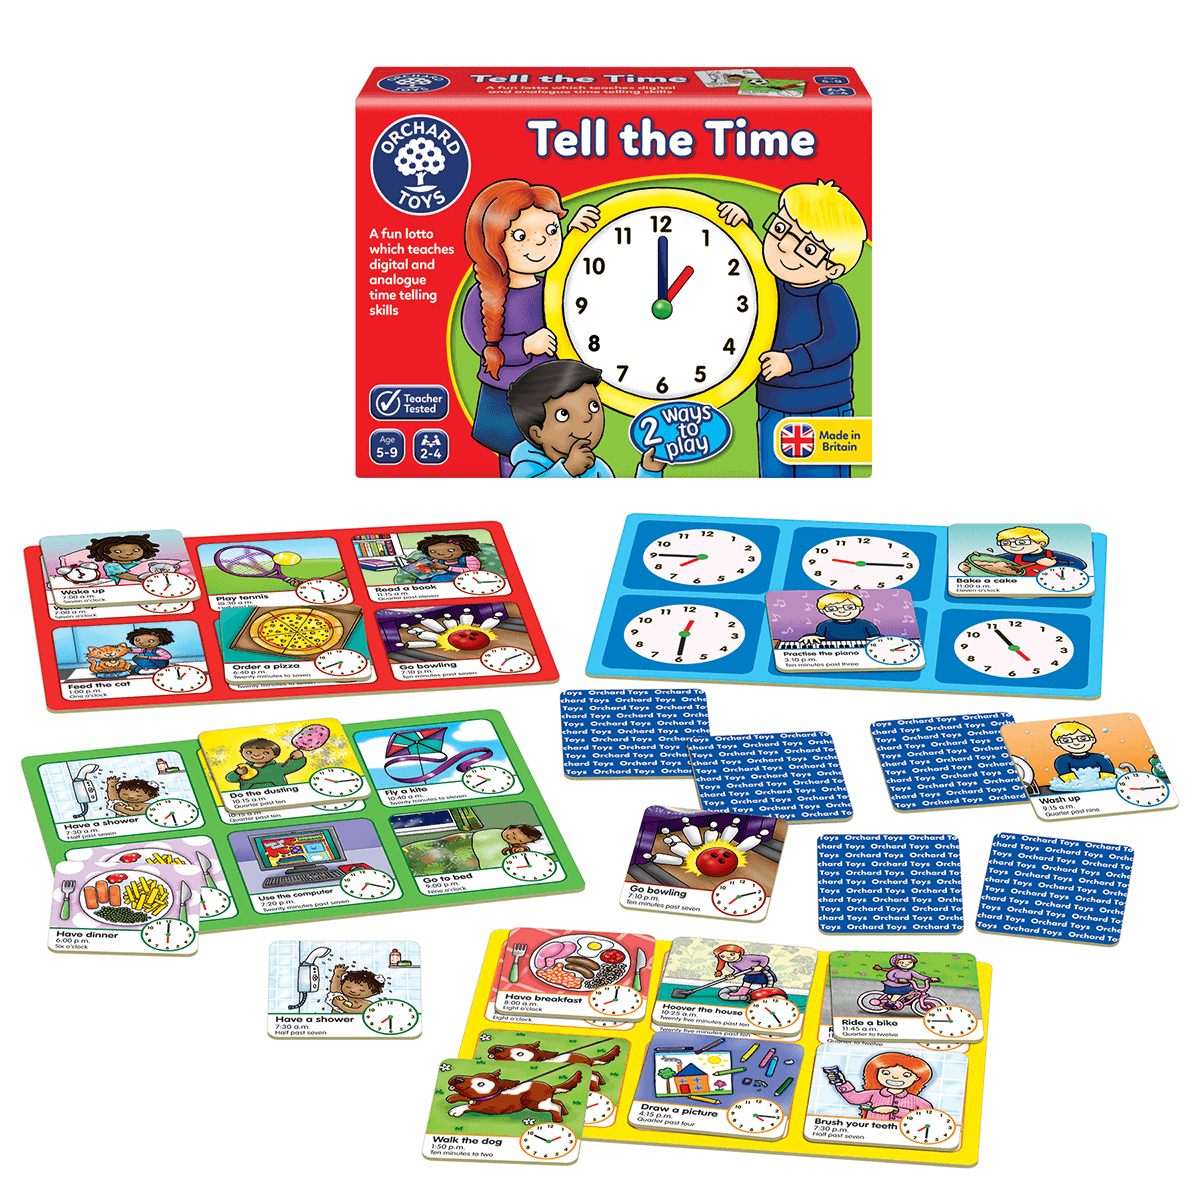 Tell The Time Game Early Learning Centre Orchard toys where do i live? tell the time game